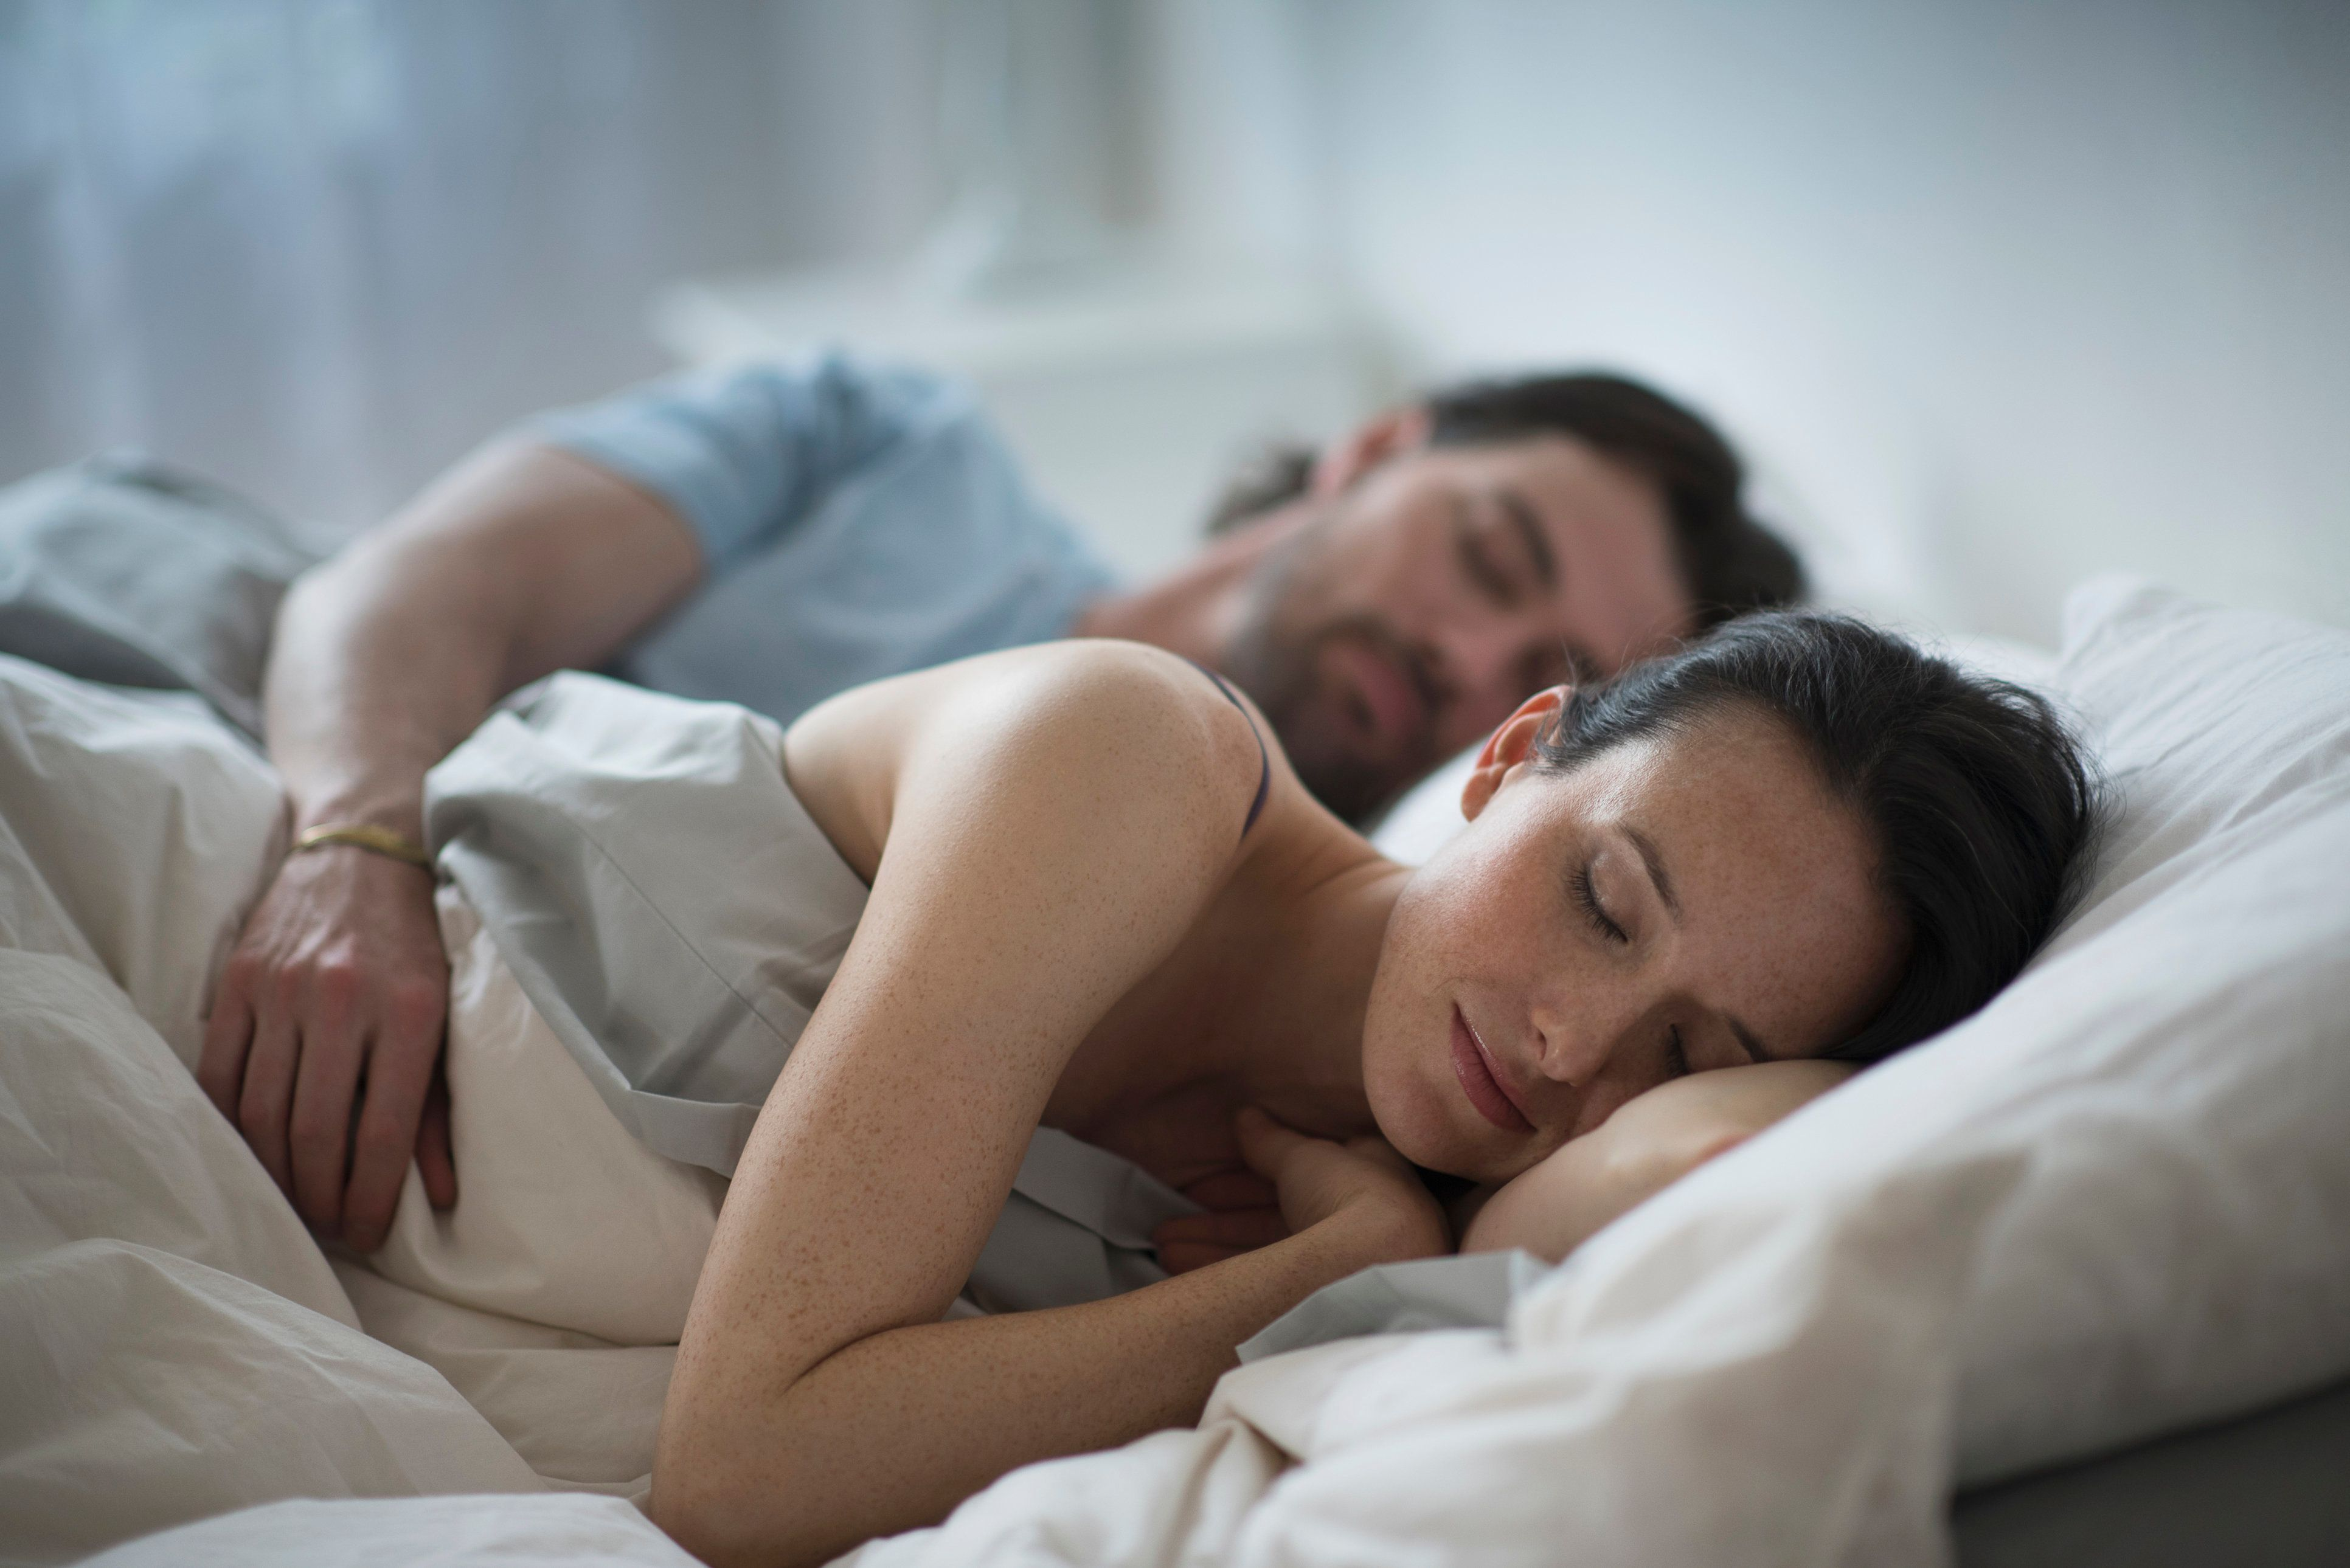 In a small study, men were less able to suppress a negative memory after they'd slept.